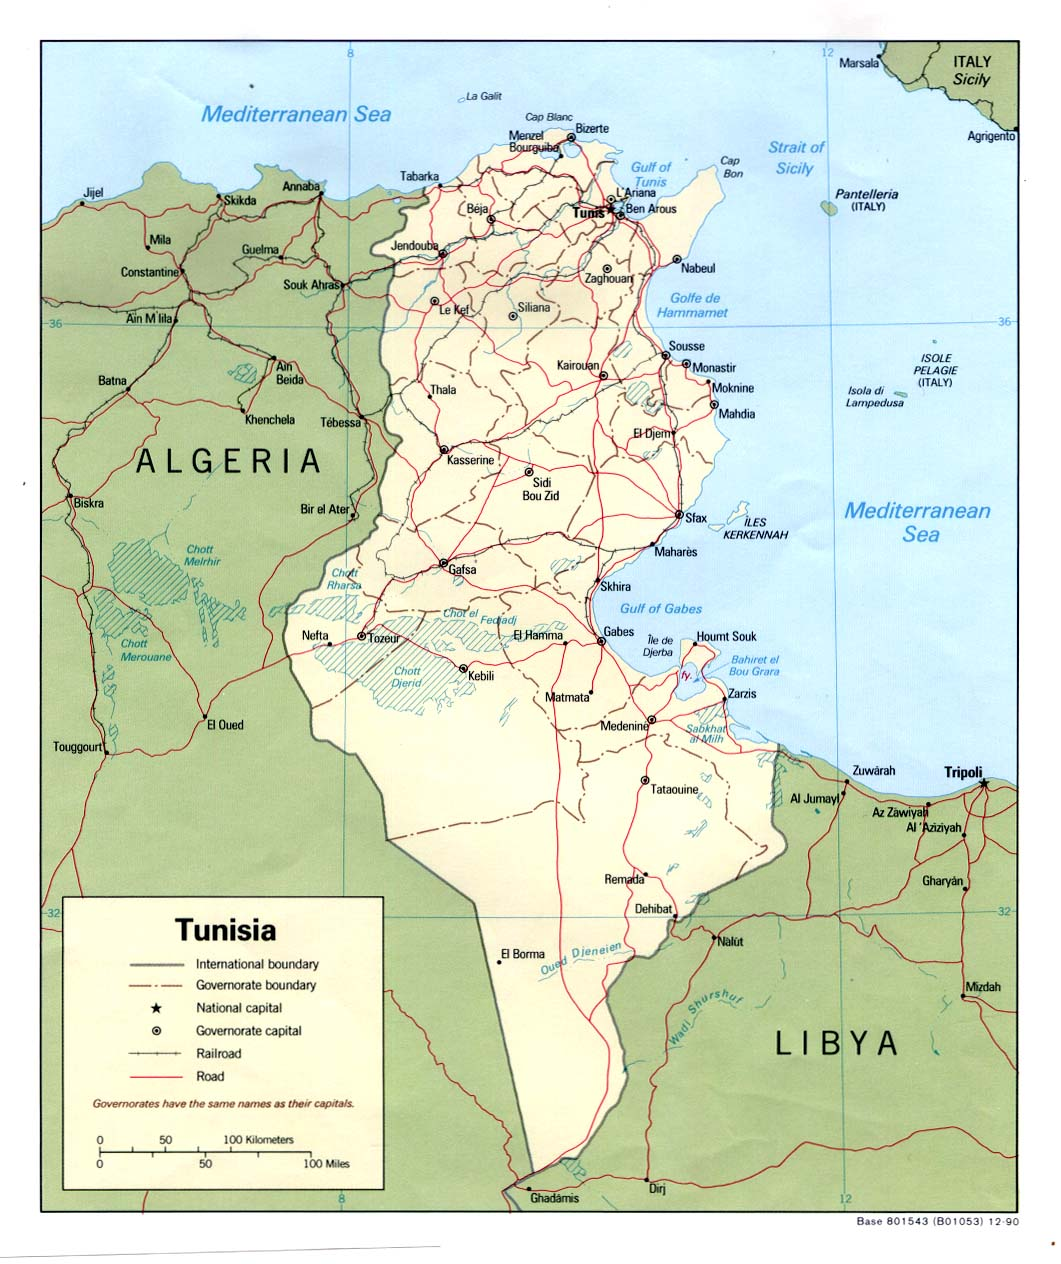 Map of Tunisia's borders with the railways, the capital and the capitals of each region.